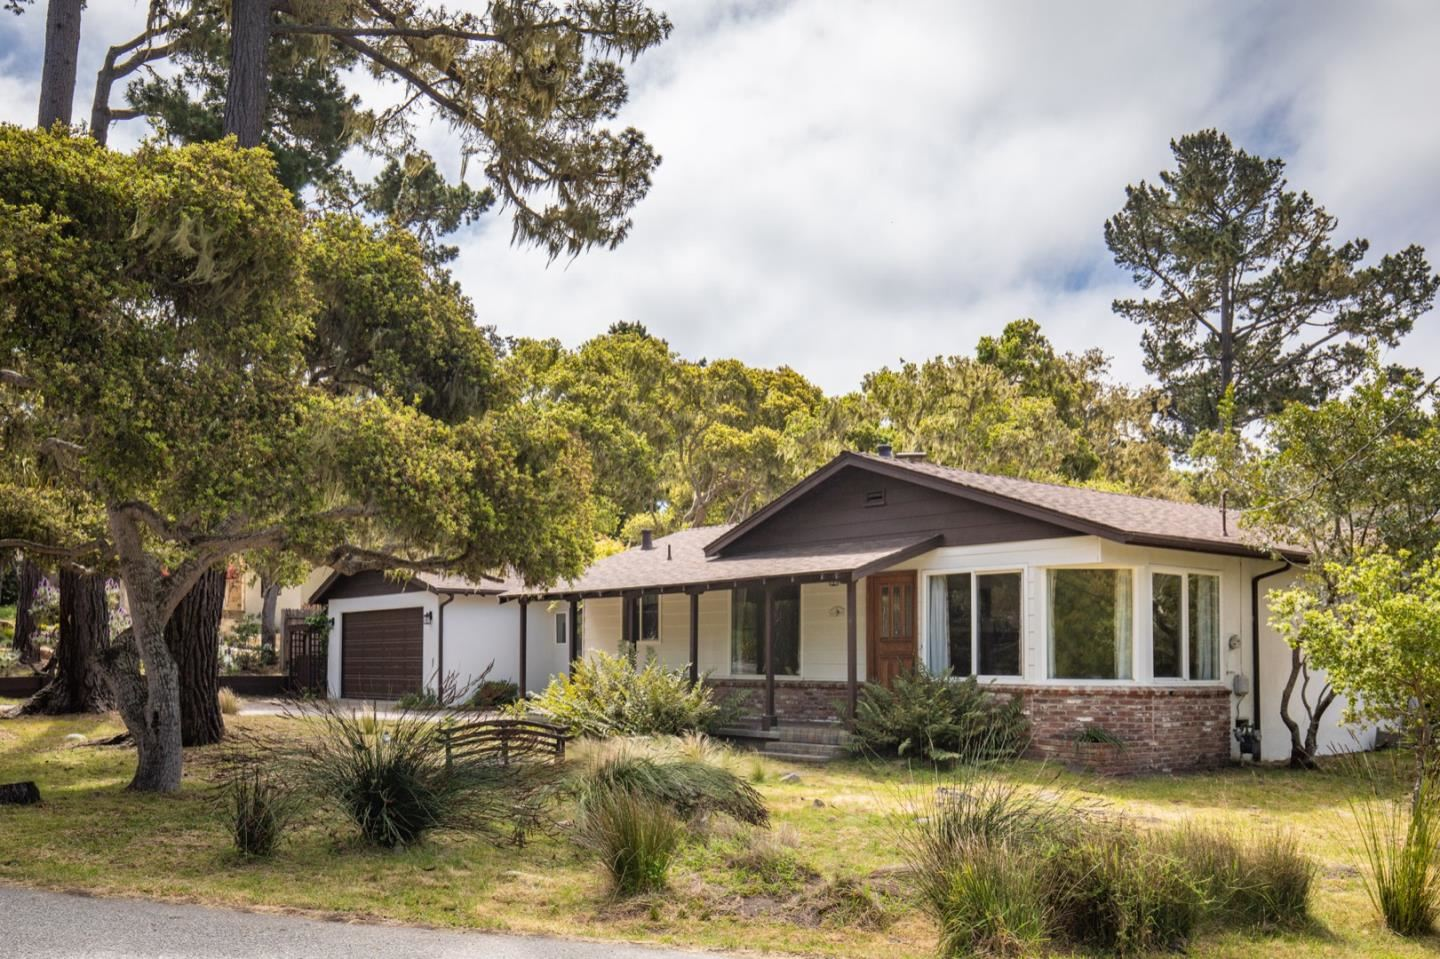 Photo for 2845 Coyote Road, PEBBLE BEACH, CA 93953 (MLS # ML81836501)